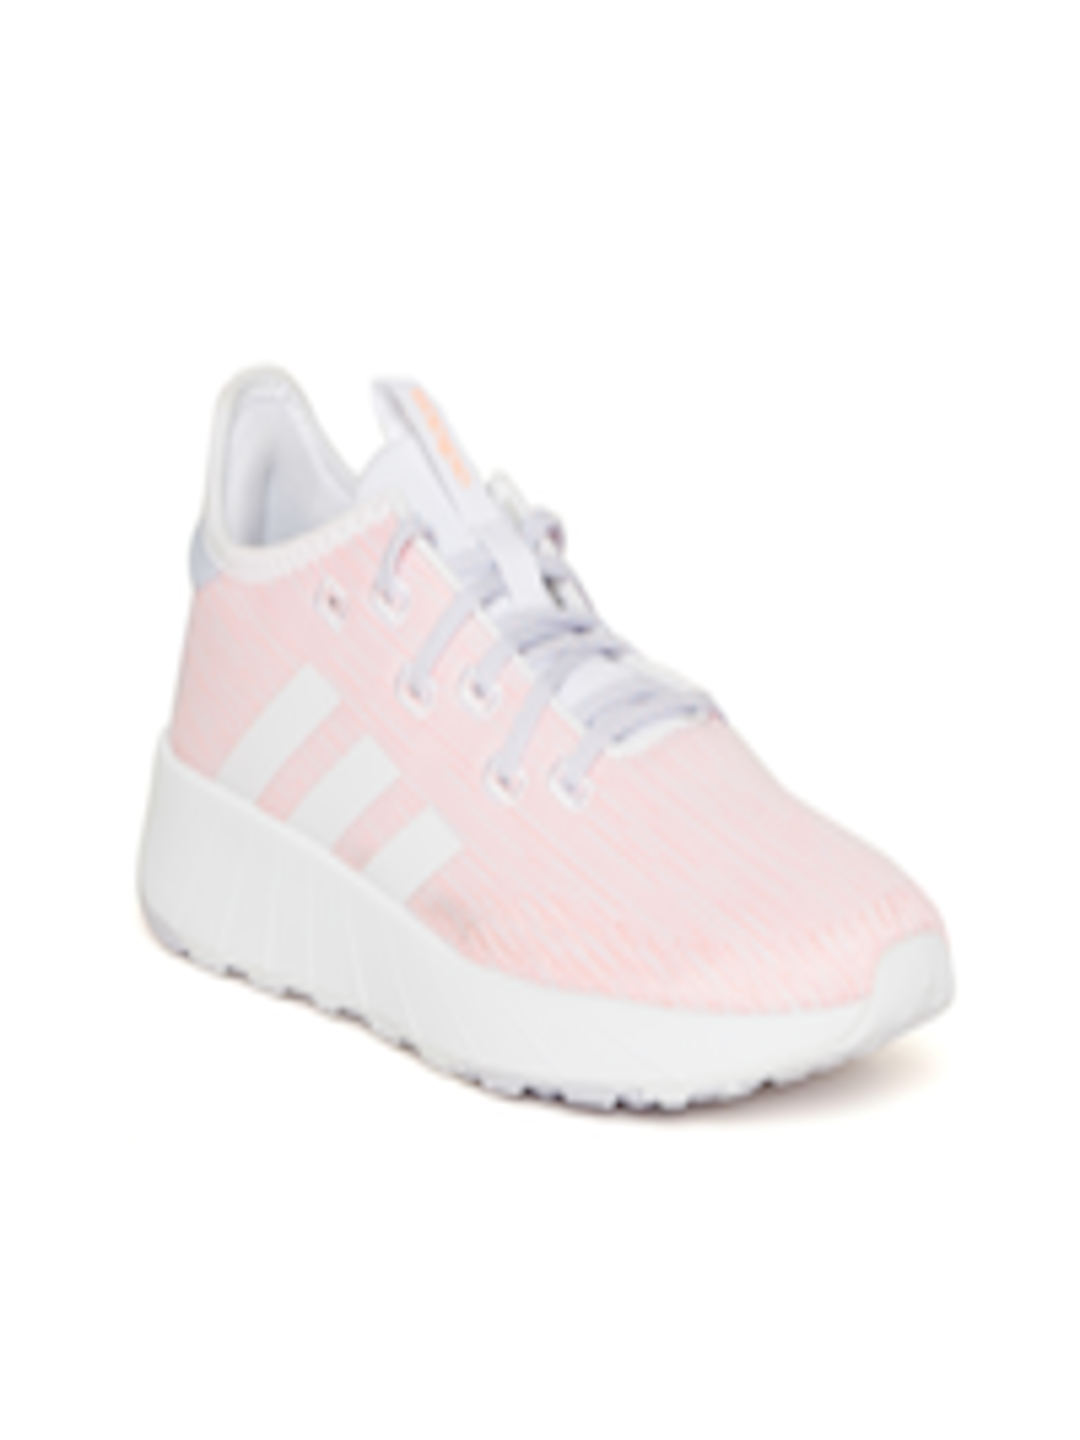 in stock biggest discount vast selection Buy Adidas Women Peach Coloured & White QUESTAR X BYD Running Shoes - -  Footwear for Women